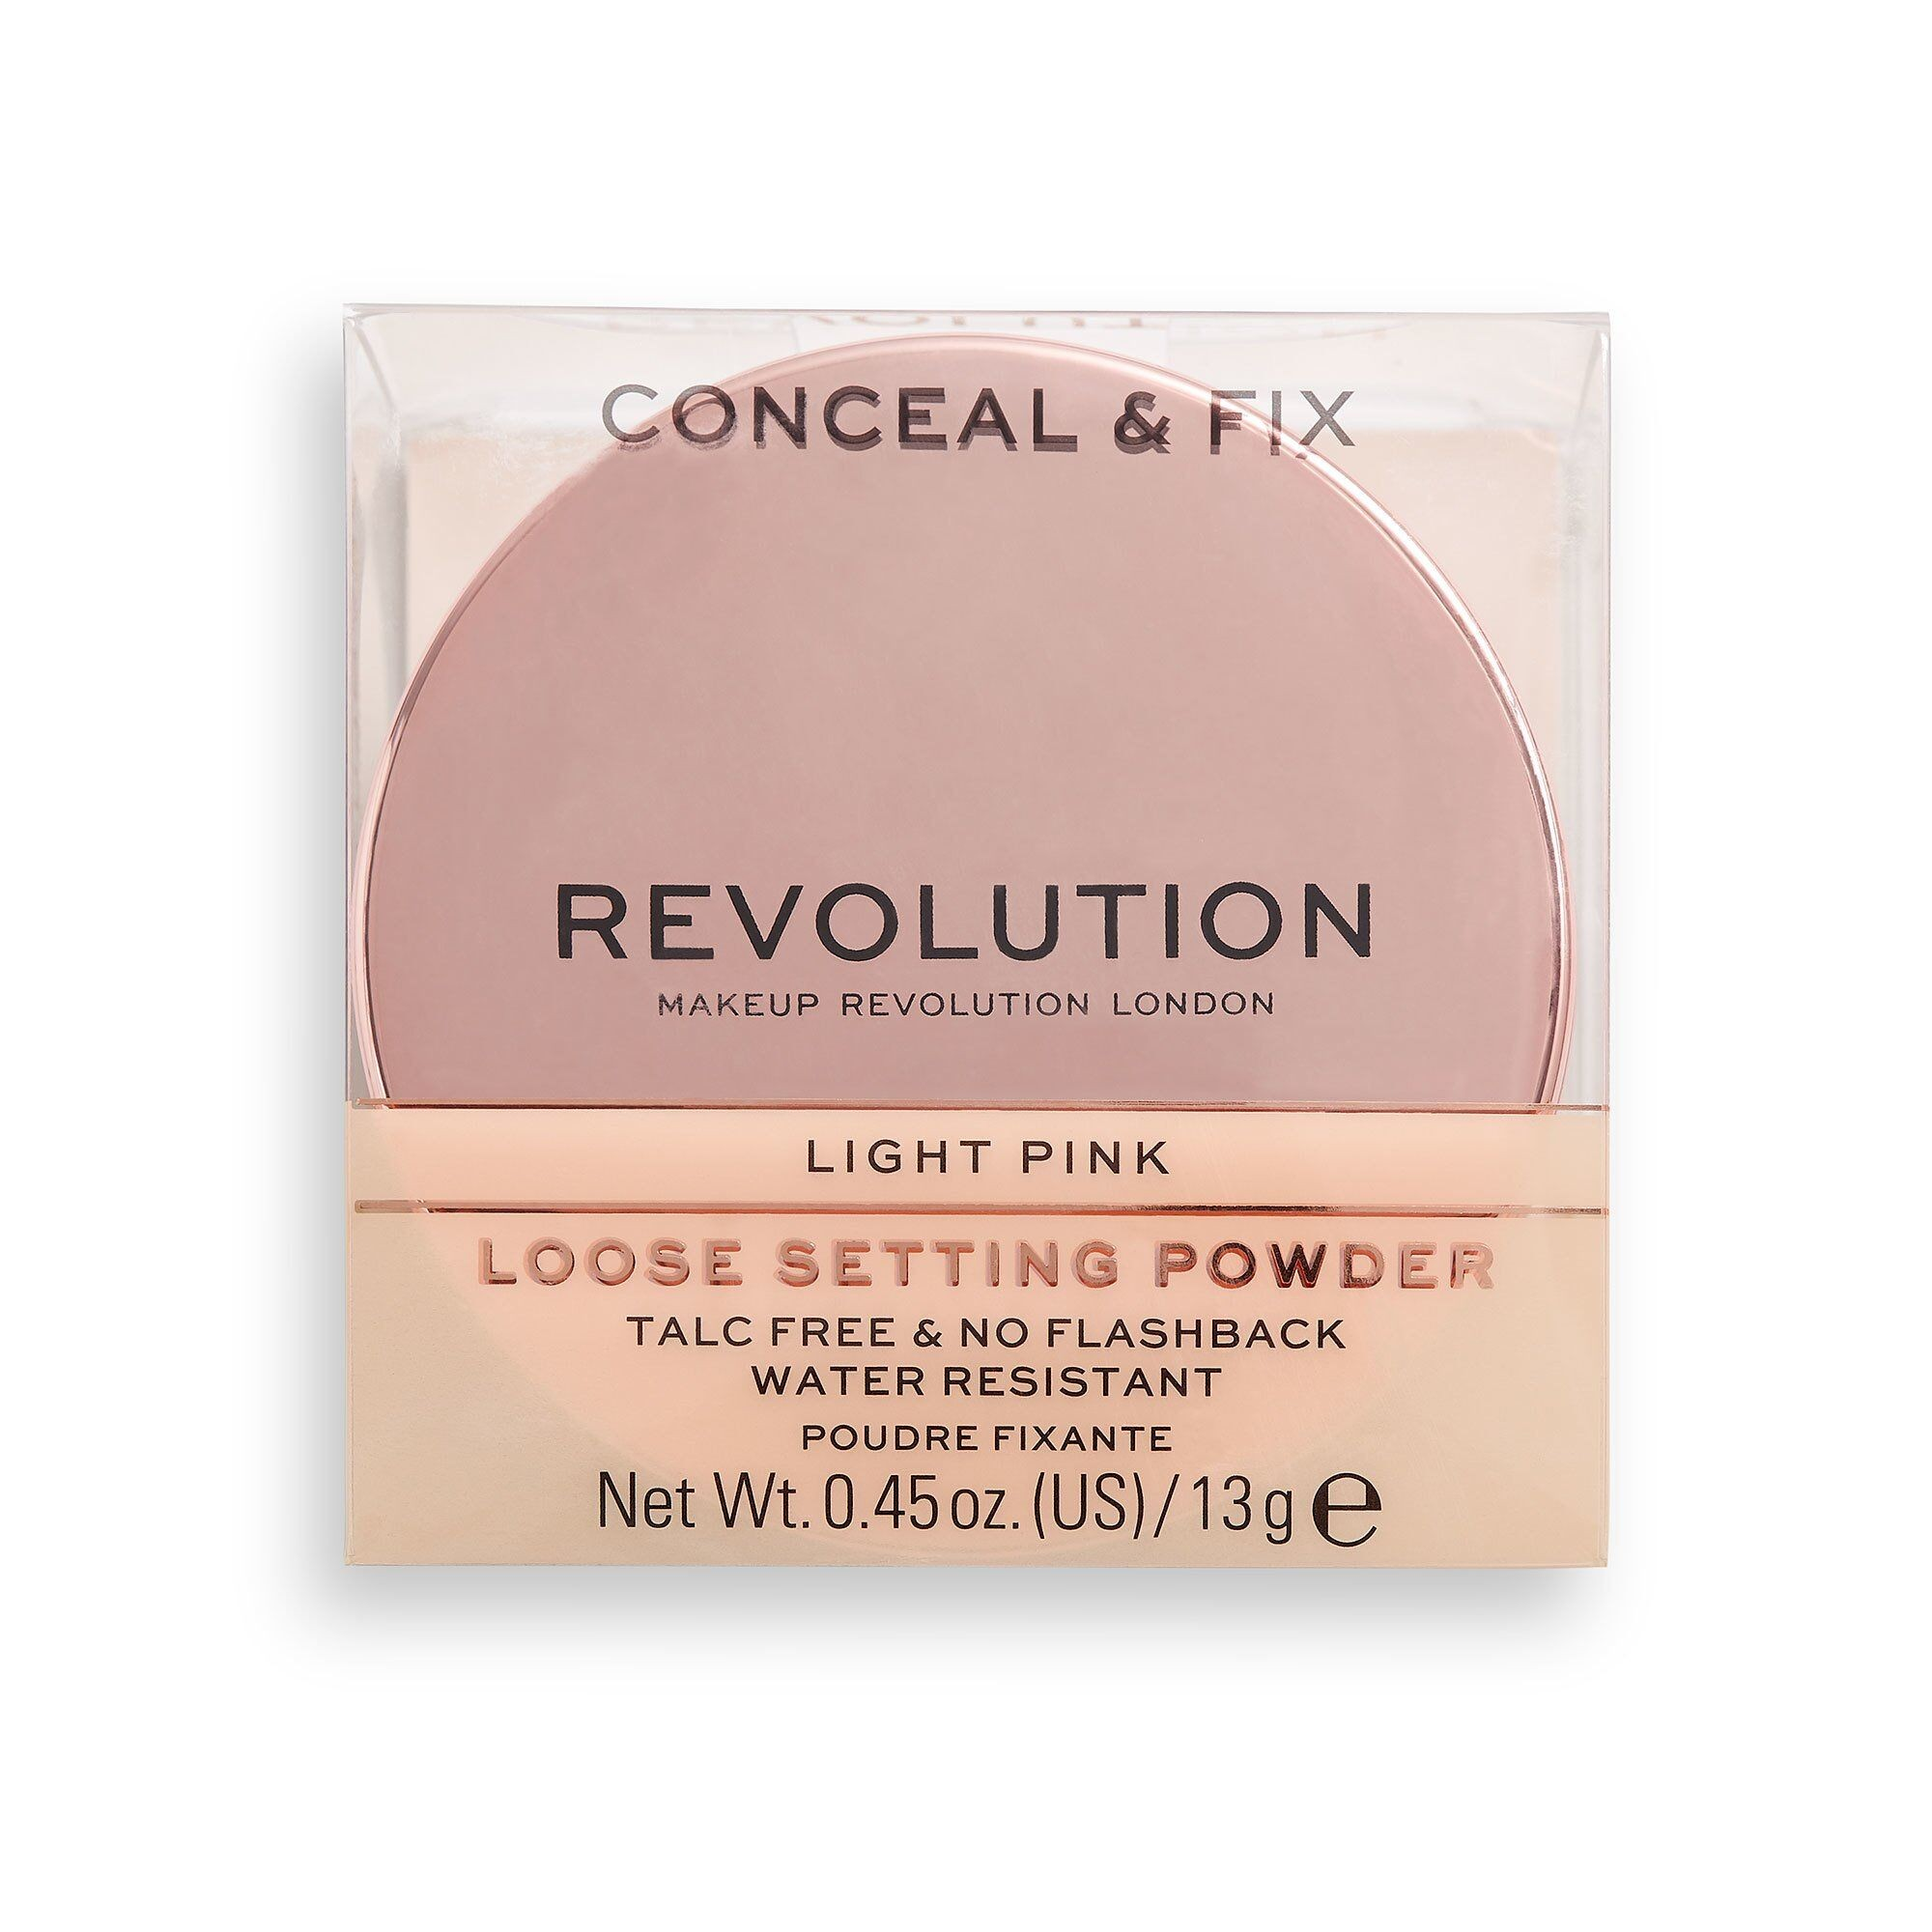 Puder - Conceal & Fix Setting Powder